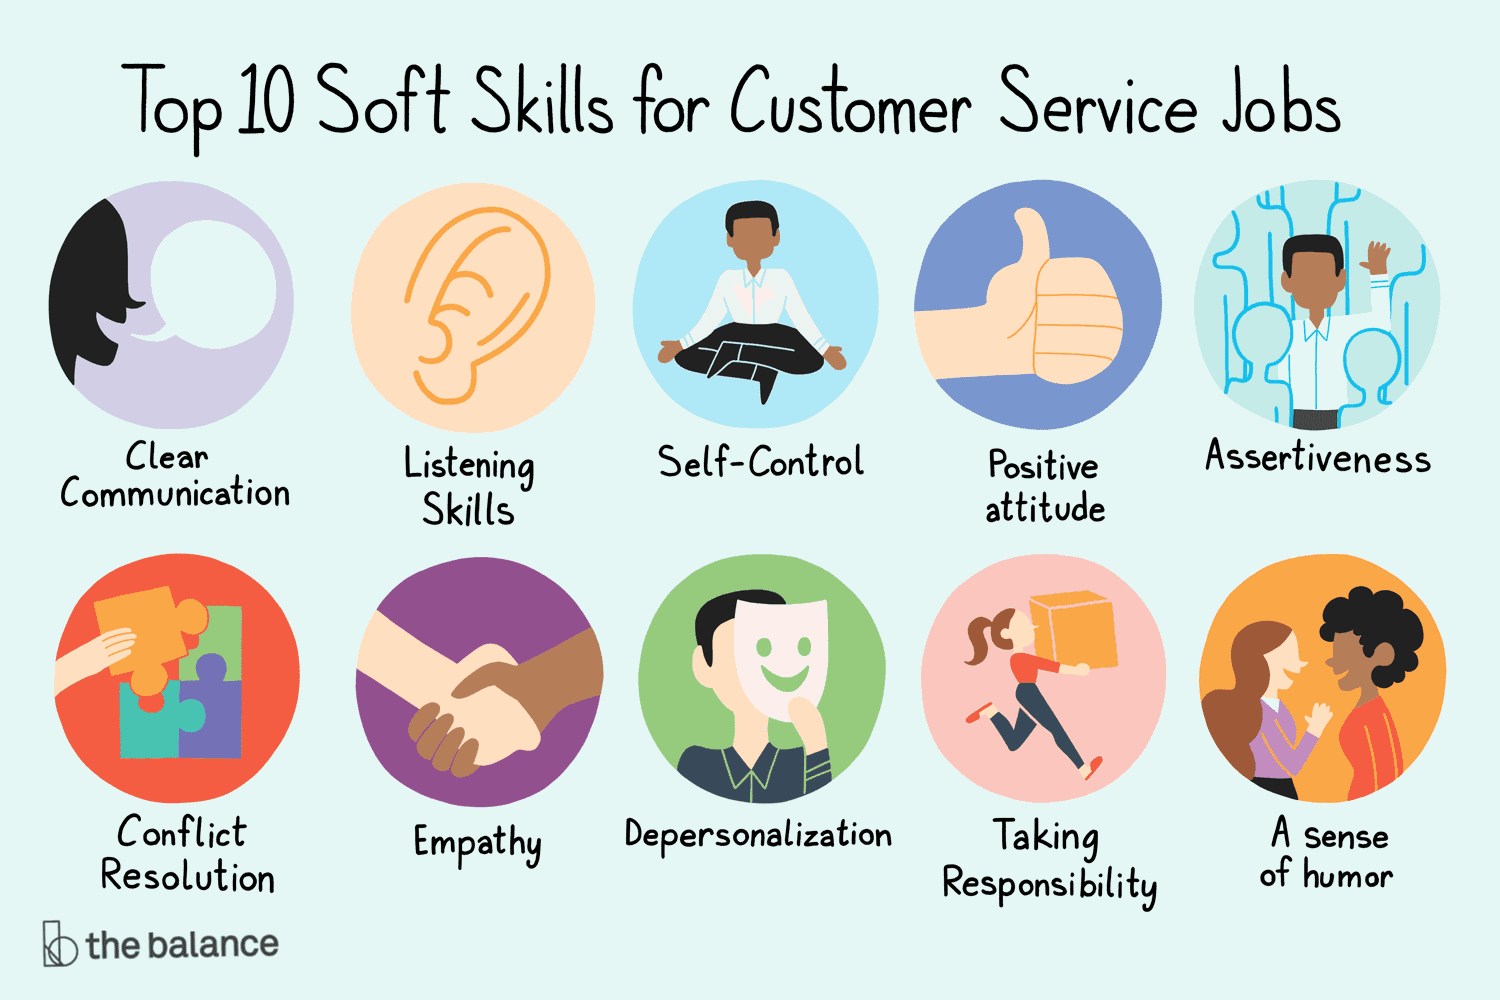 Learn about the soft skills employers seek for customer